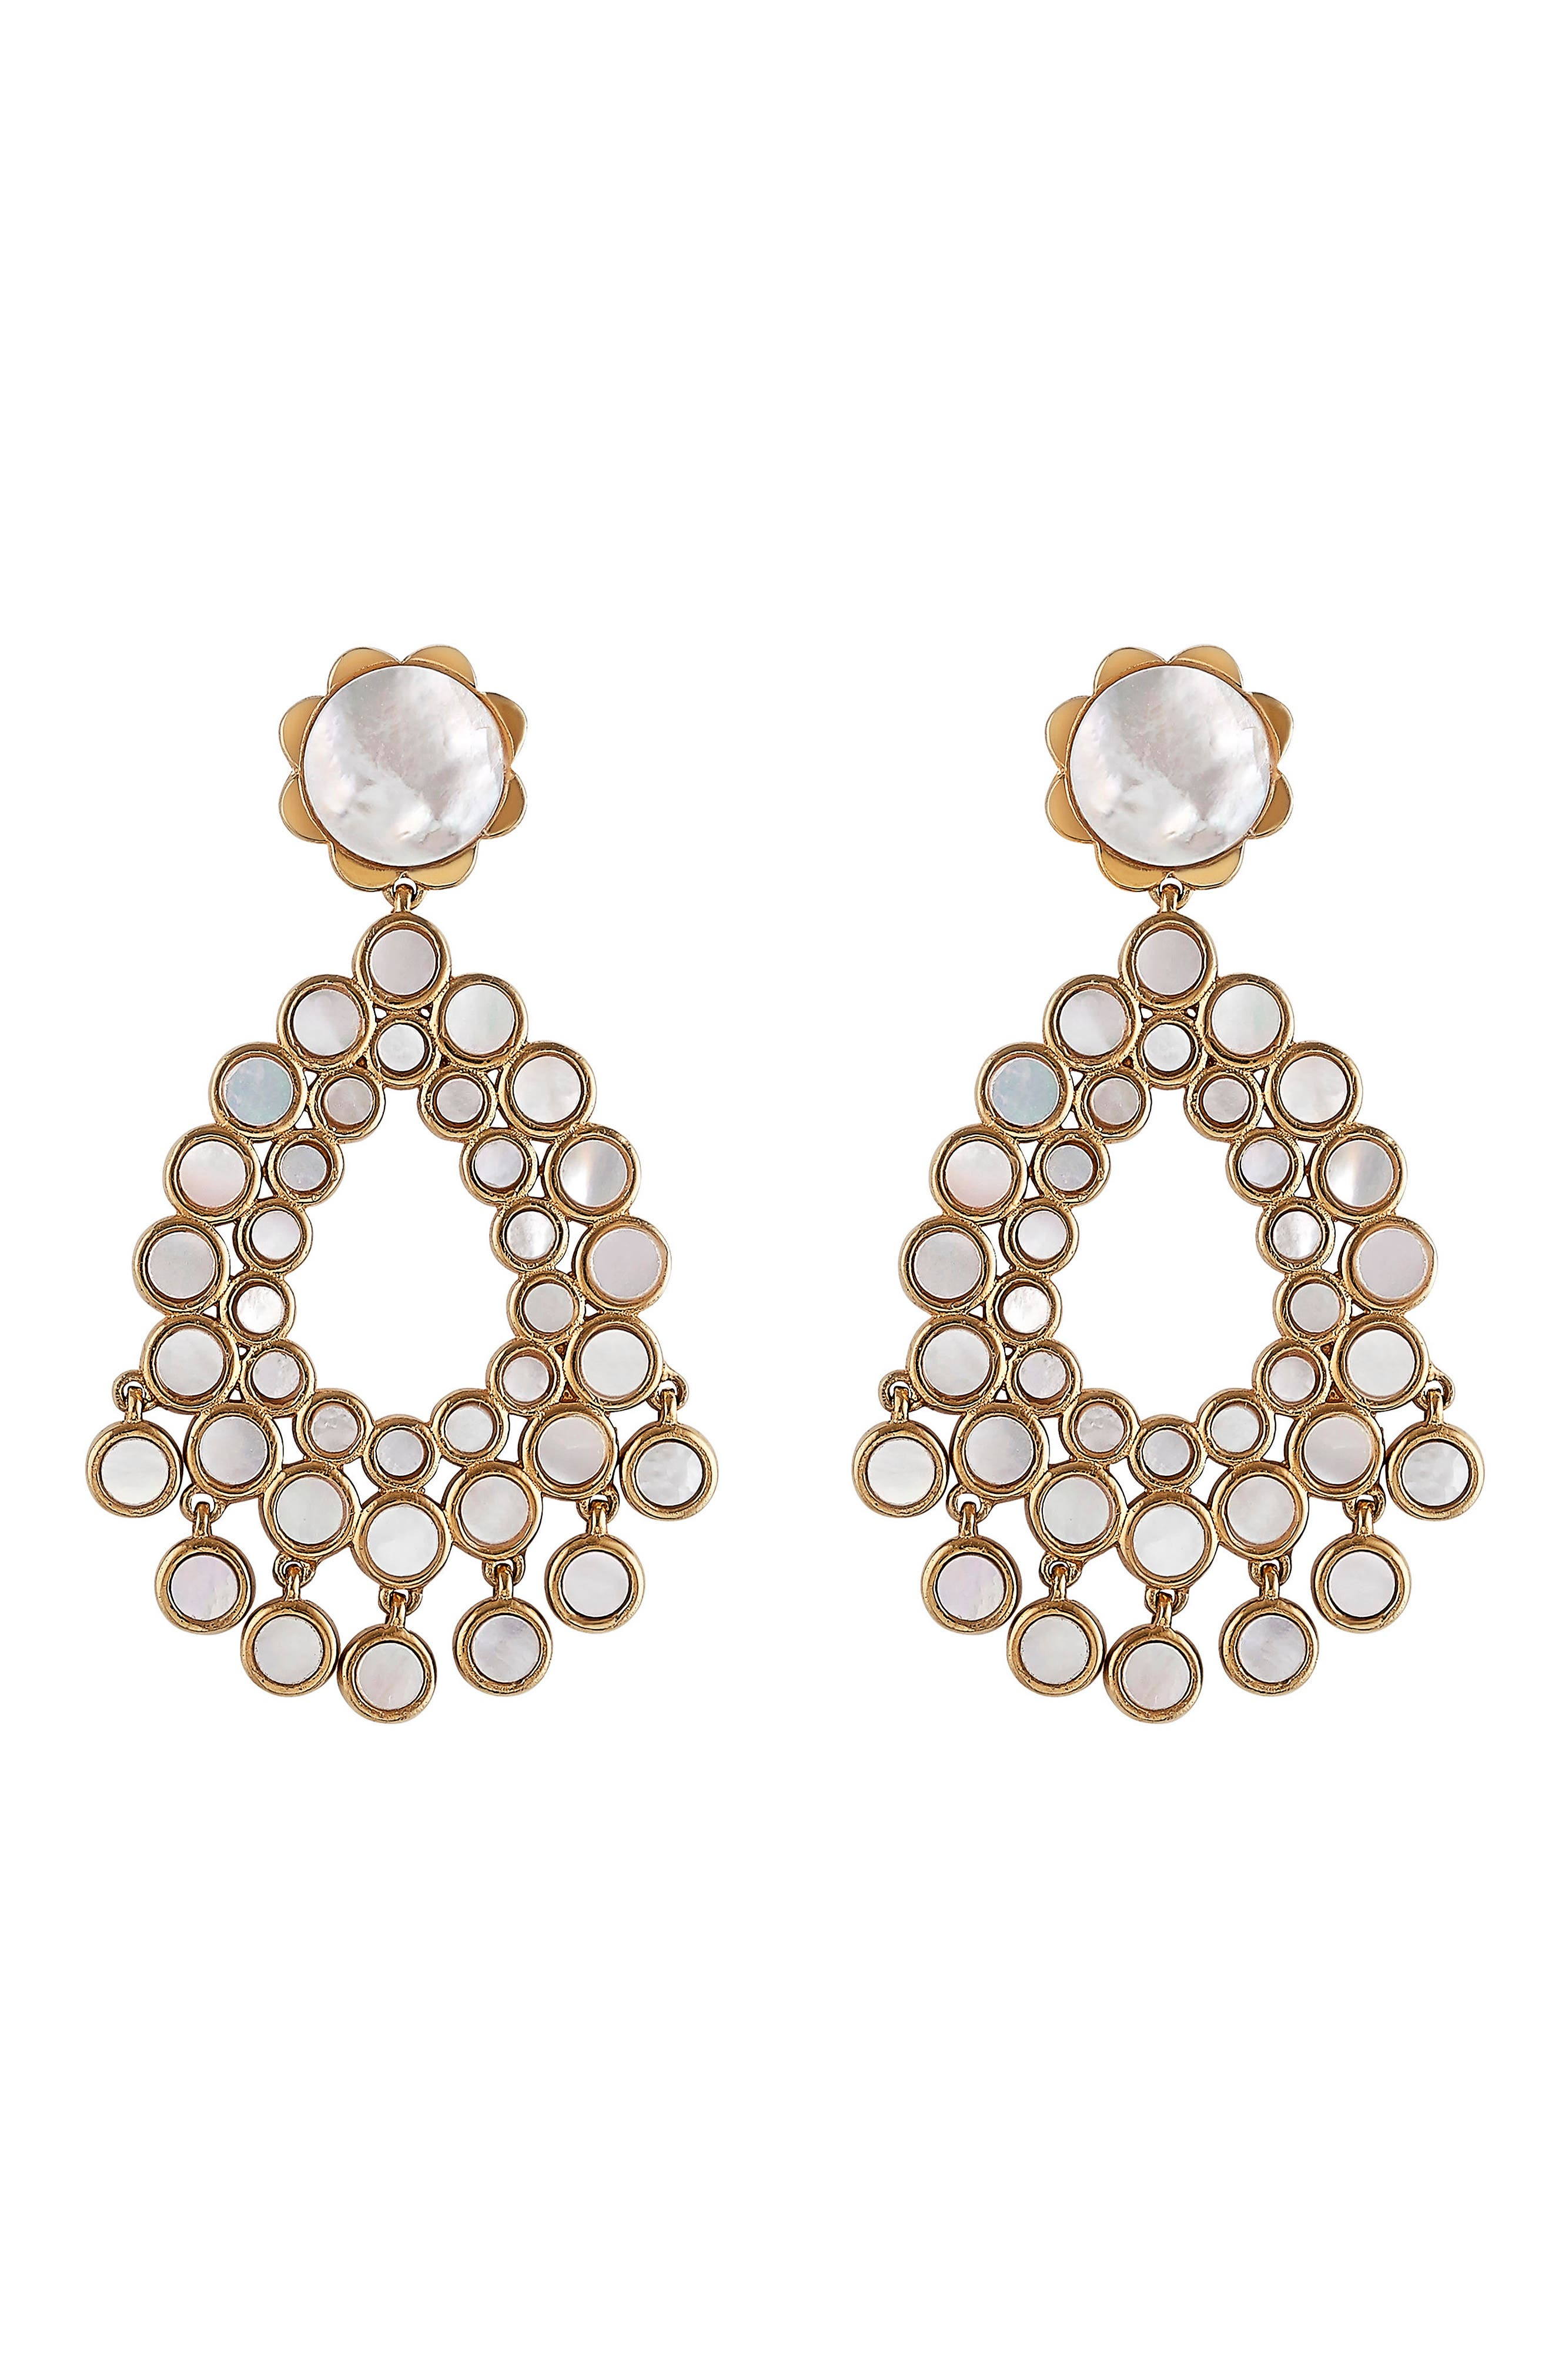 Flower Chandelier Earrings,                         Main,                         color, Gold - Mother Of Pearl